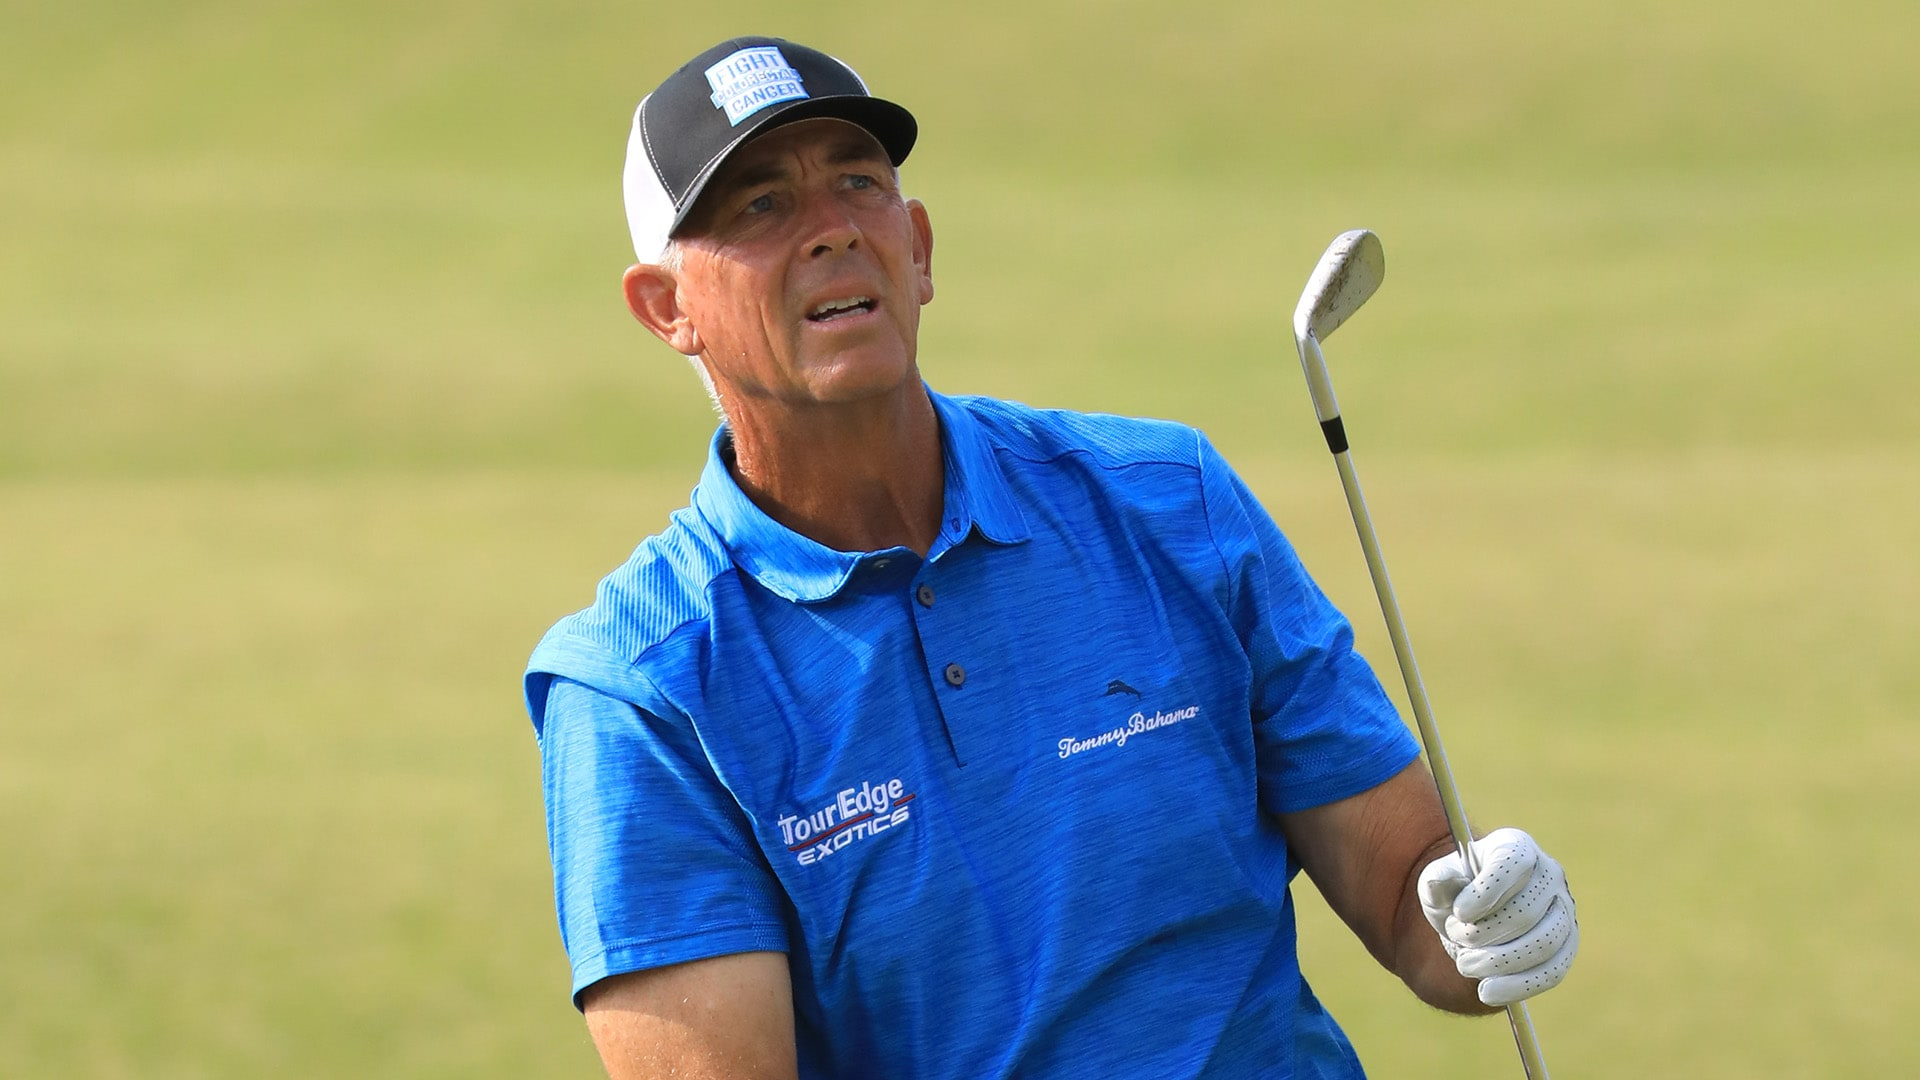 After moment of silence, Tom Lehman condemns injustice in no ...